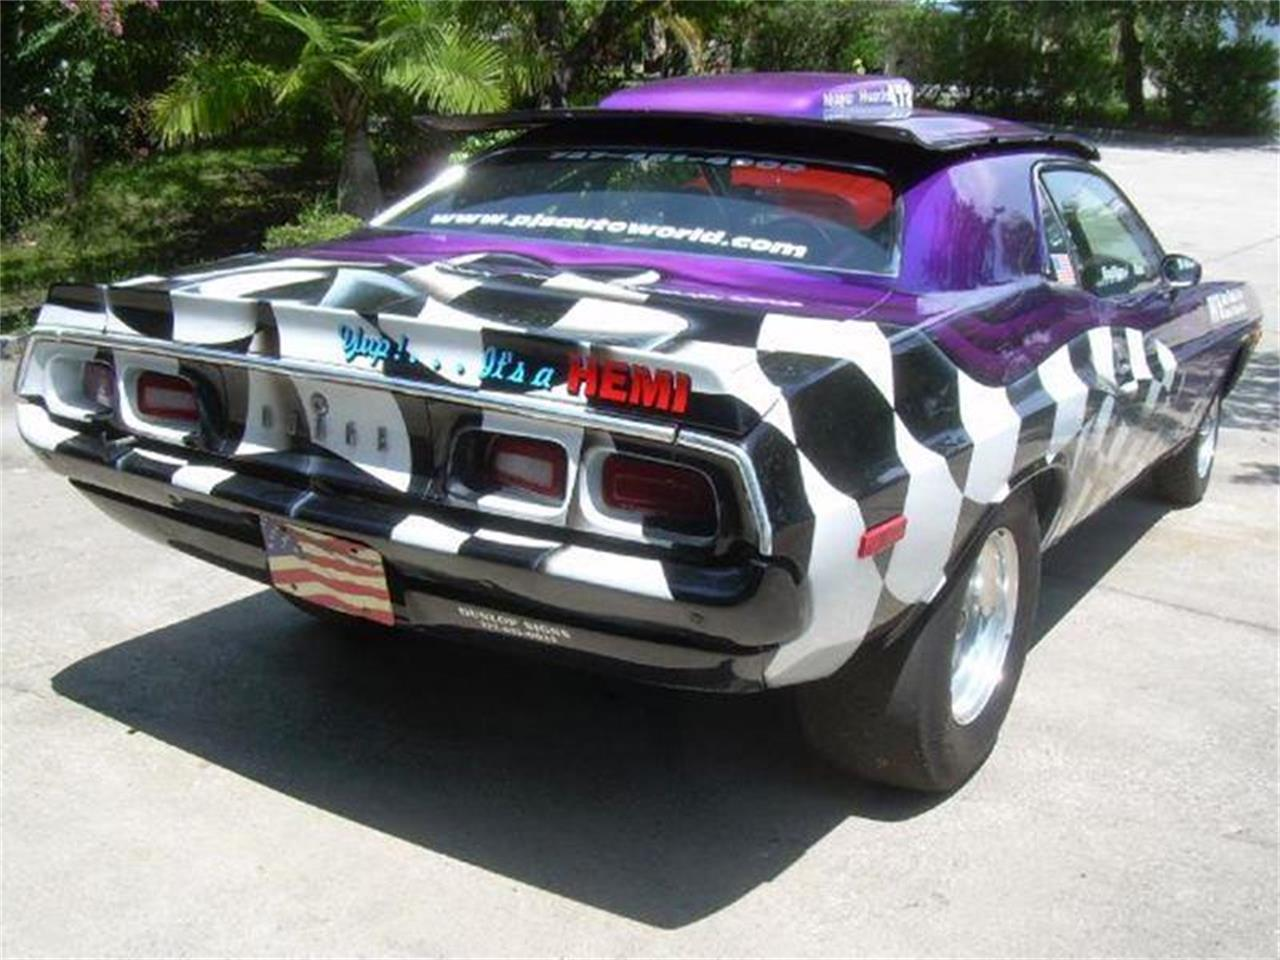 Large Picture of 1973 Challenger located in Florida - $59,900.00 Offered by PJ's Auto World - 91GR